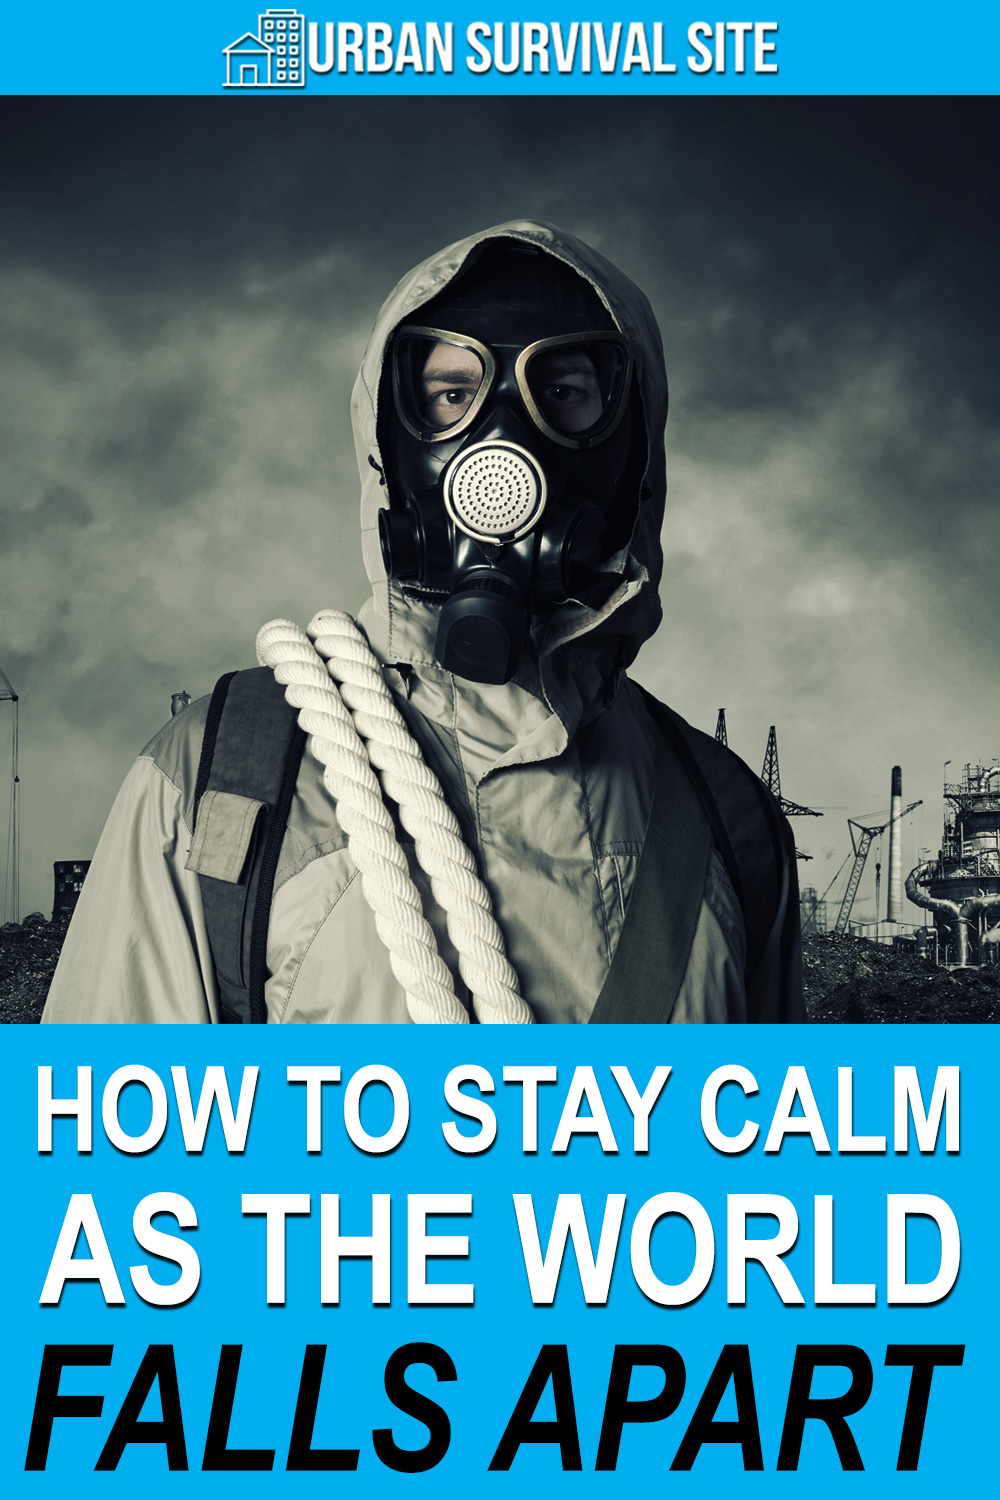 How to Stay Calm as the World Falls Apart